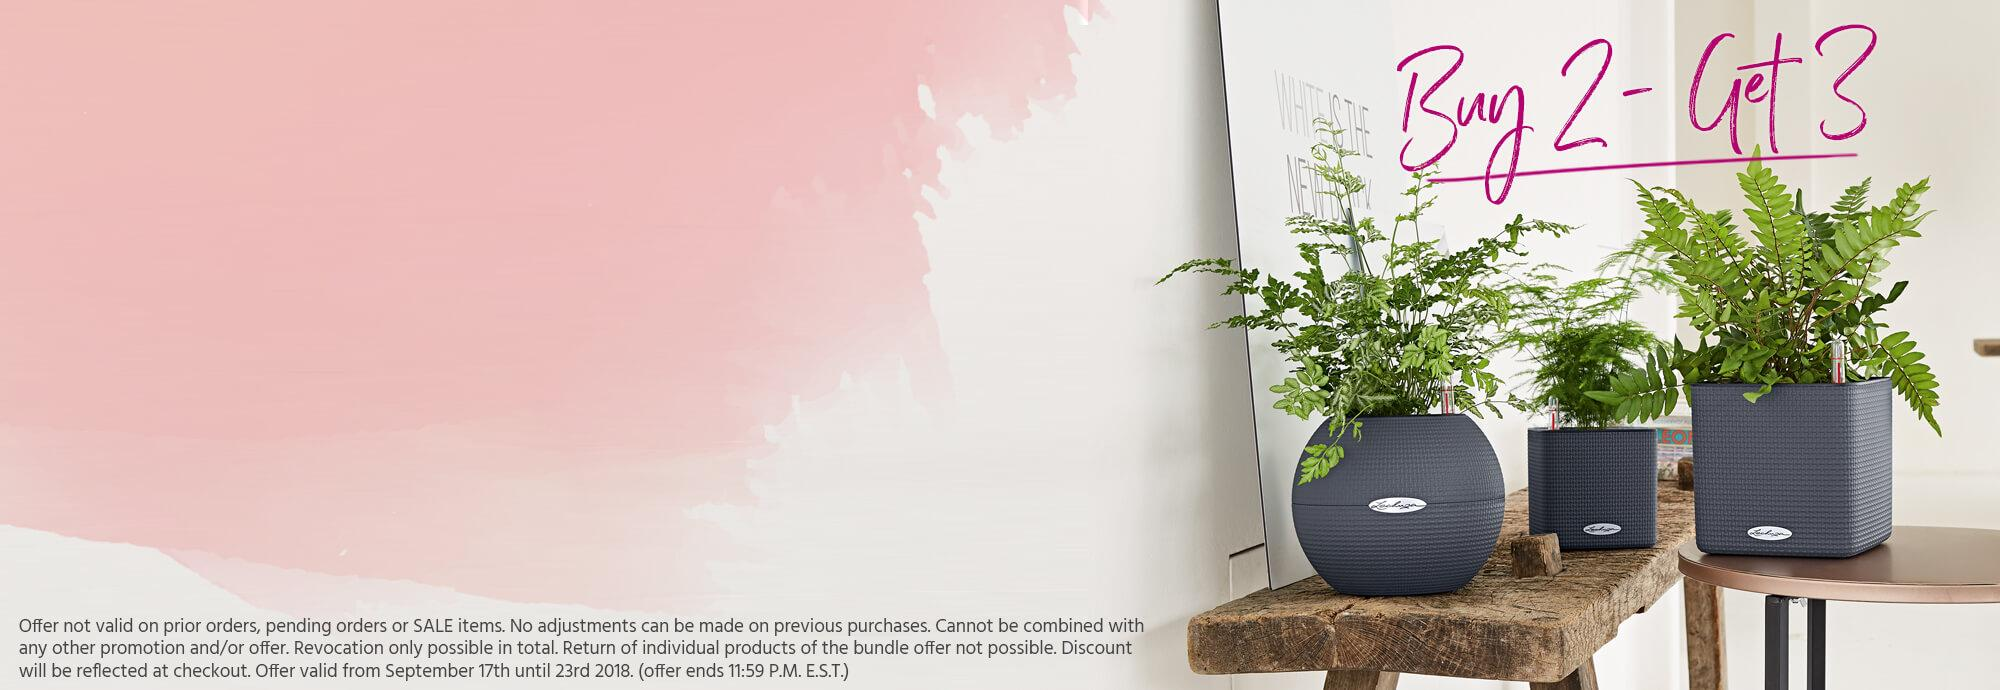 hero_banner_promo_table_planters_us